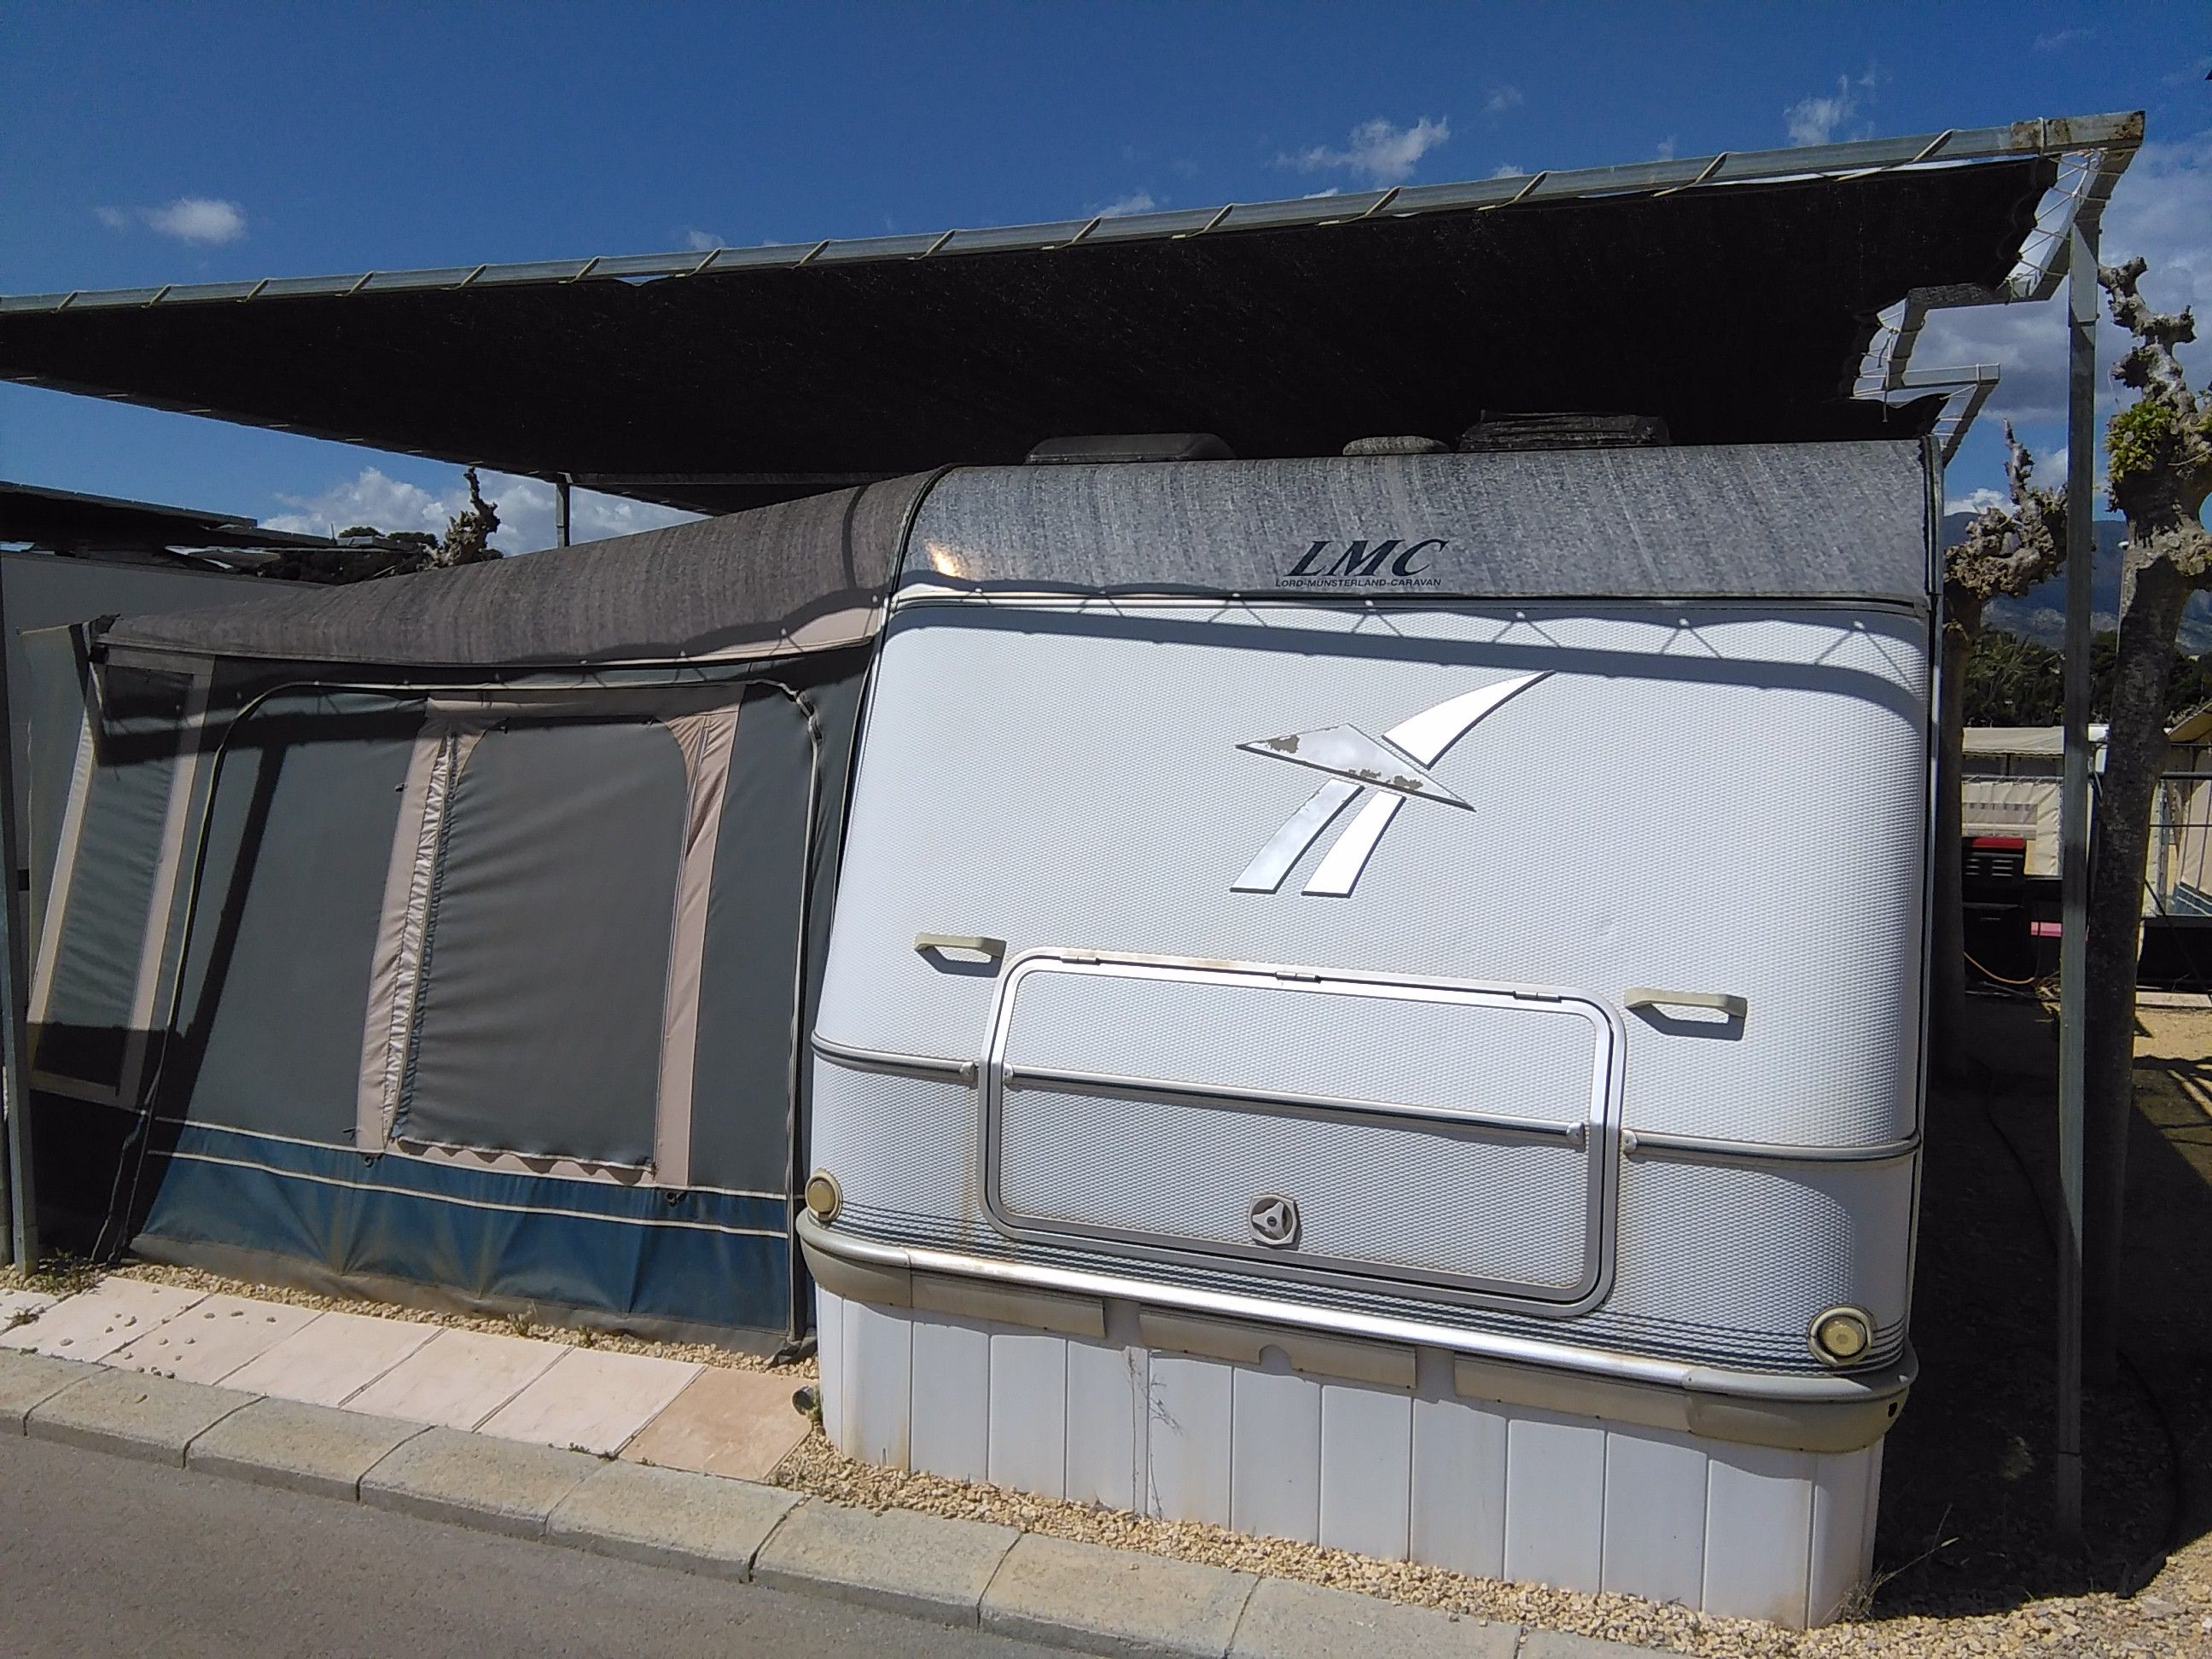 LMC Caravan For Sale On Camping Villamar Benidorm Large With Inaca Awning Toldo Shade Situated A Quiet Fenced Plot Paved Patio